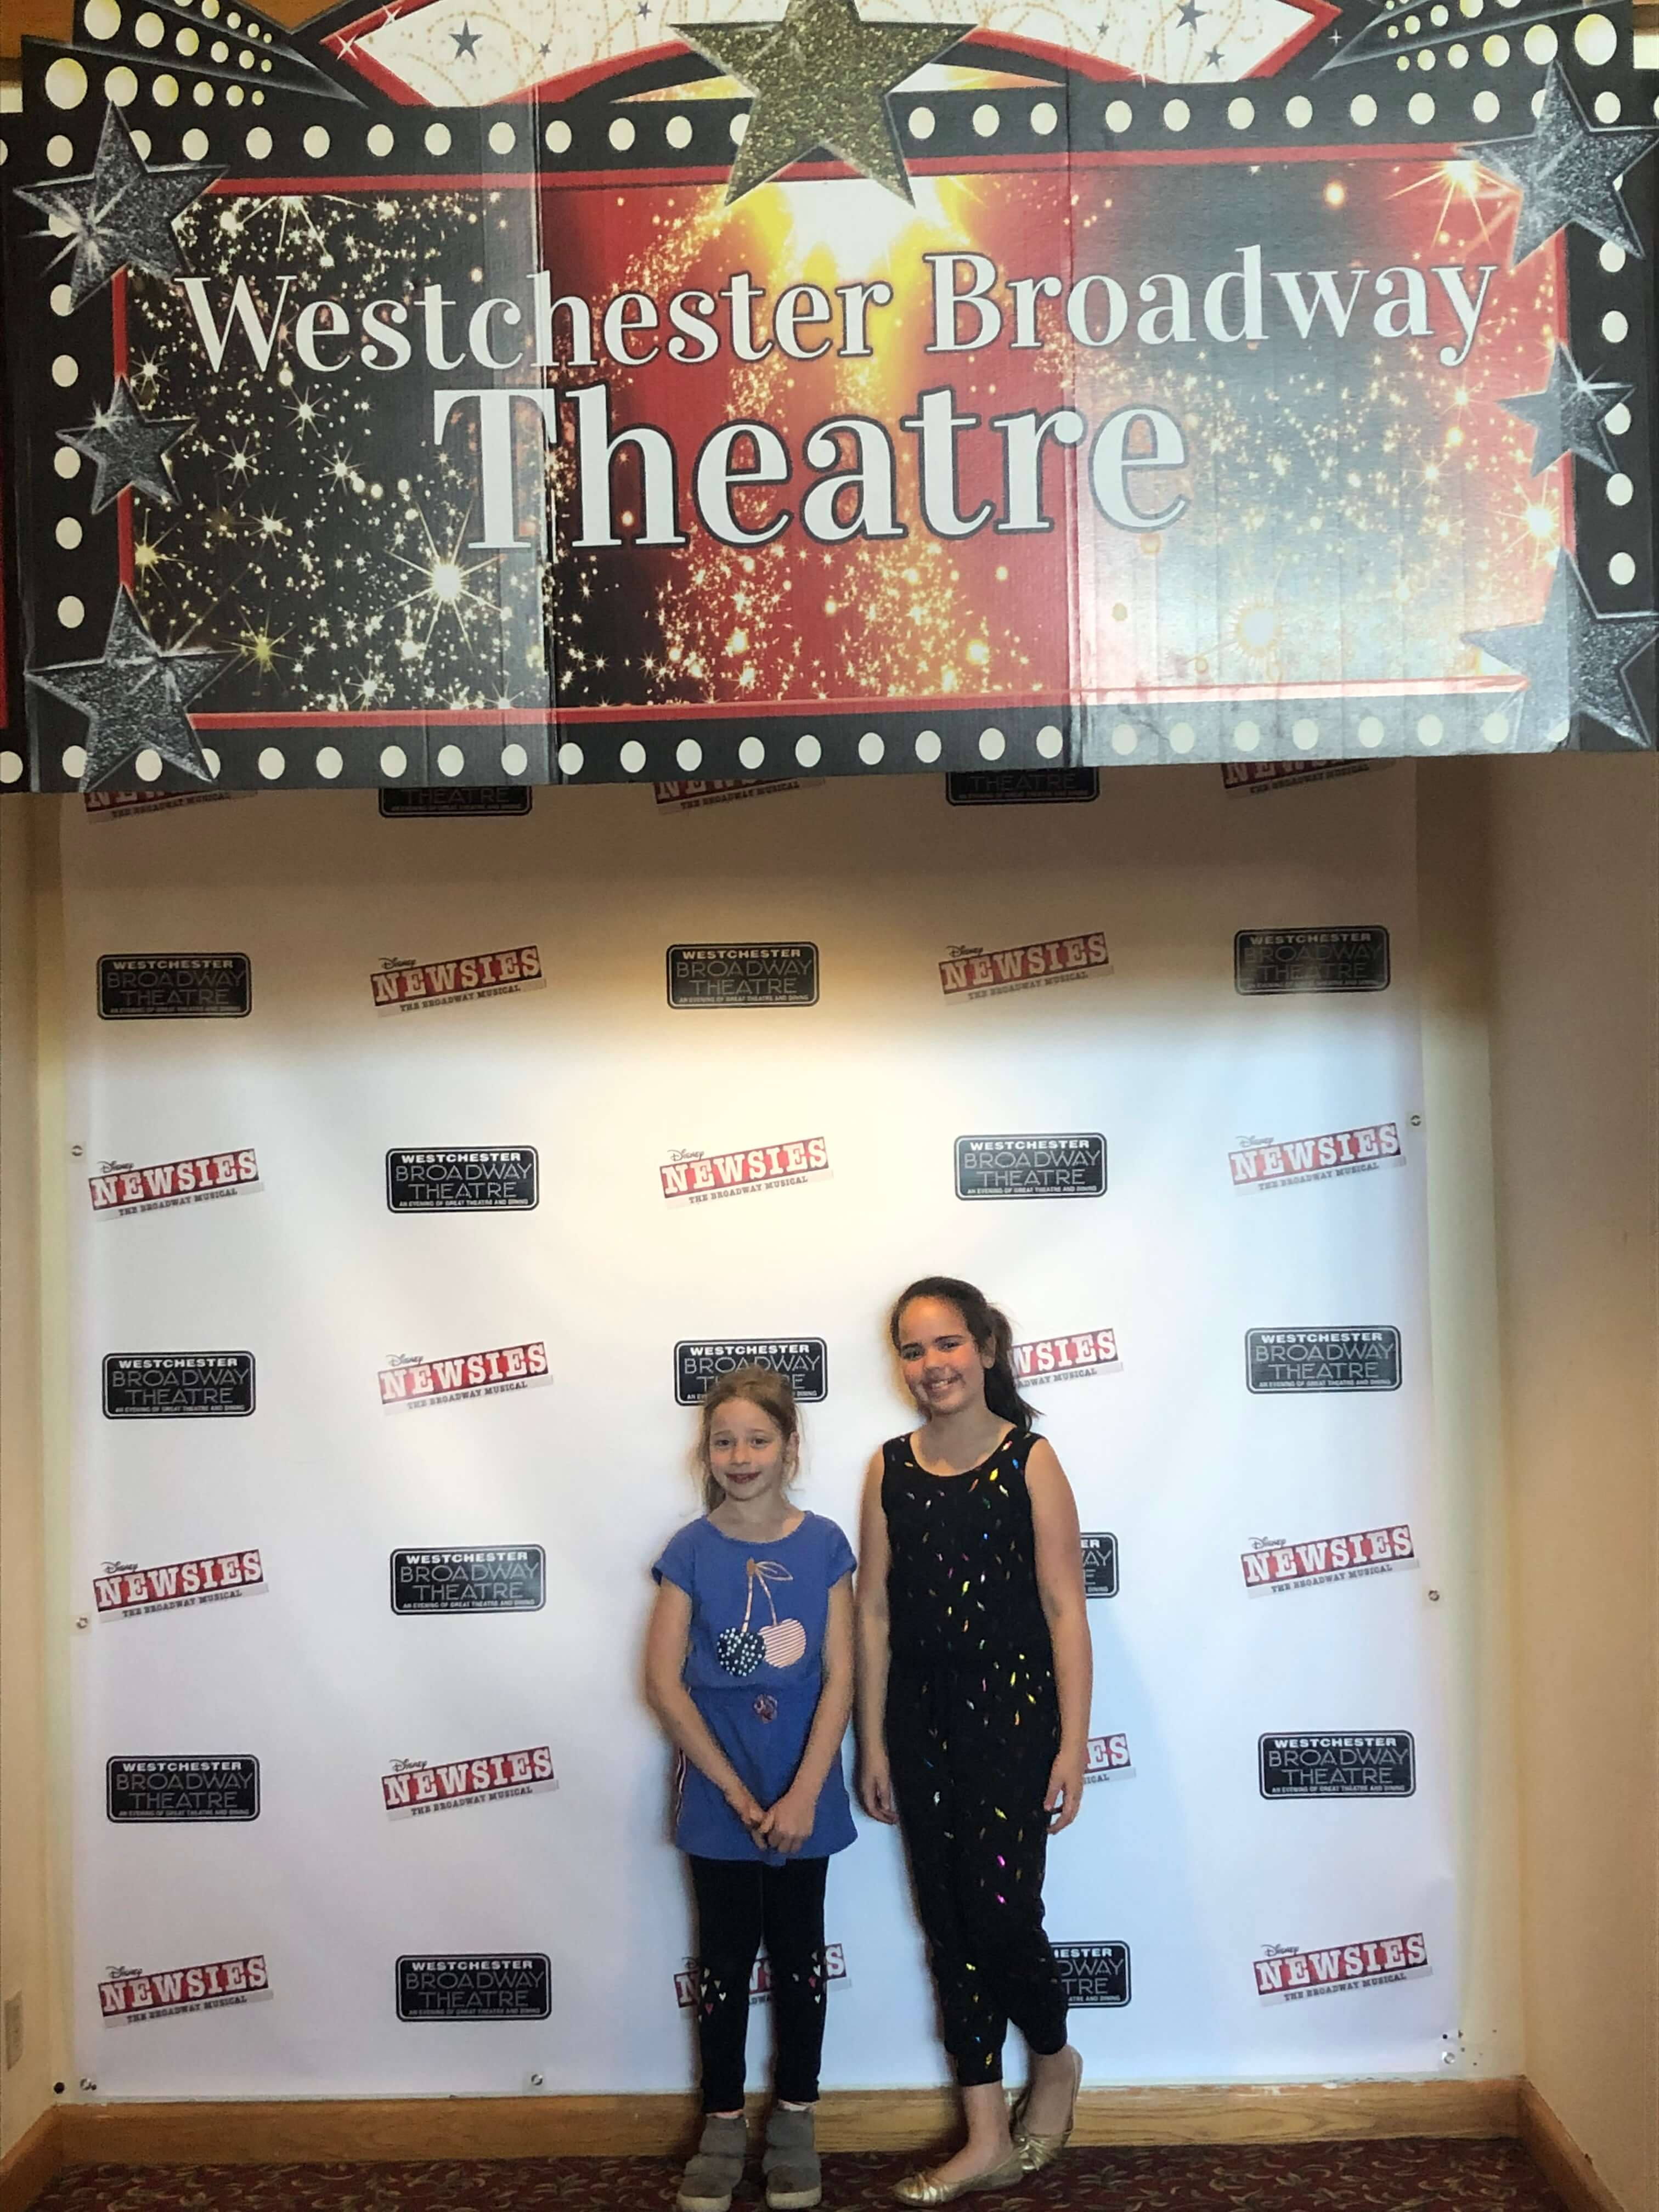 so much fun for kids at the Westchester Broadway Theatre